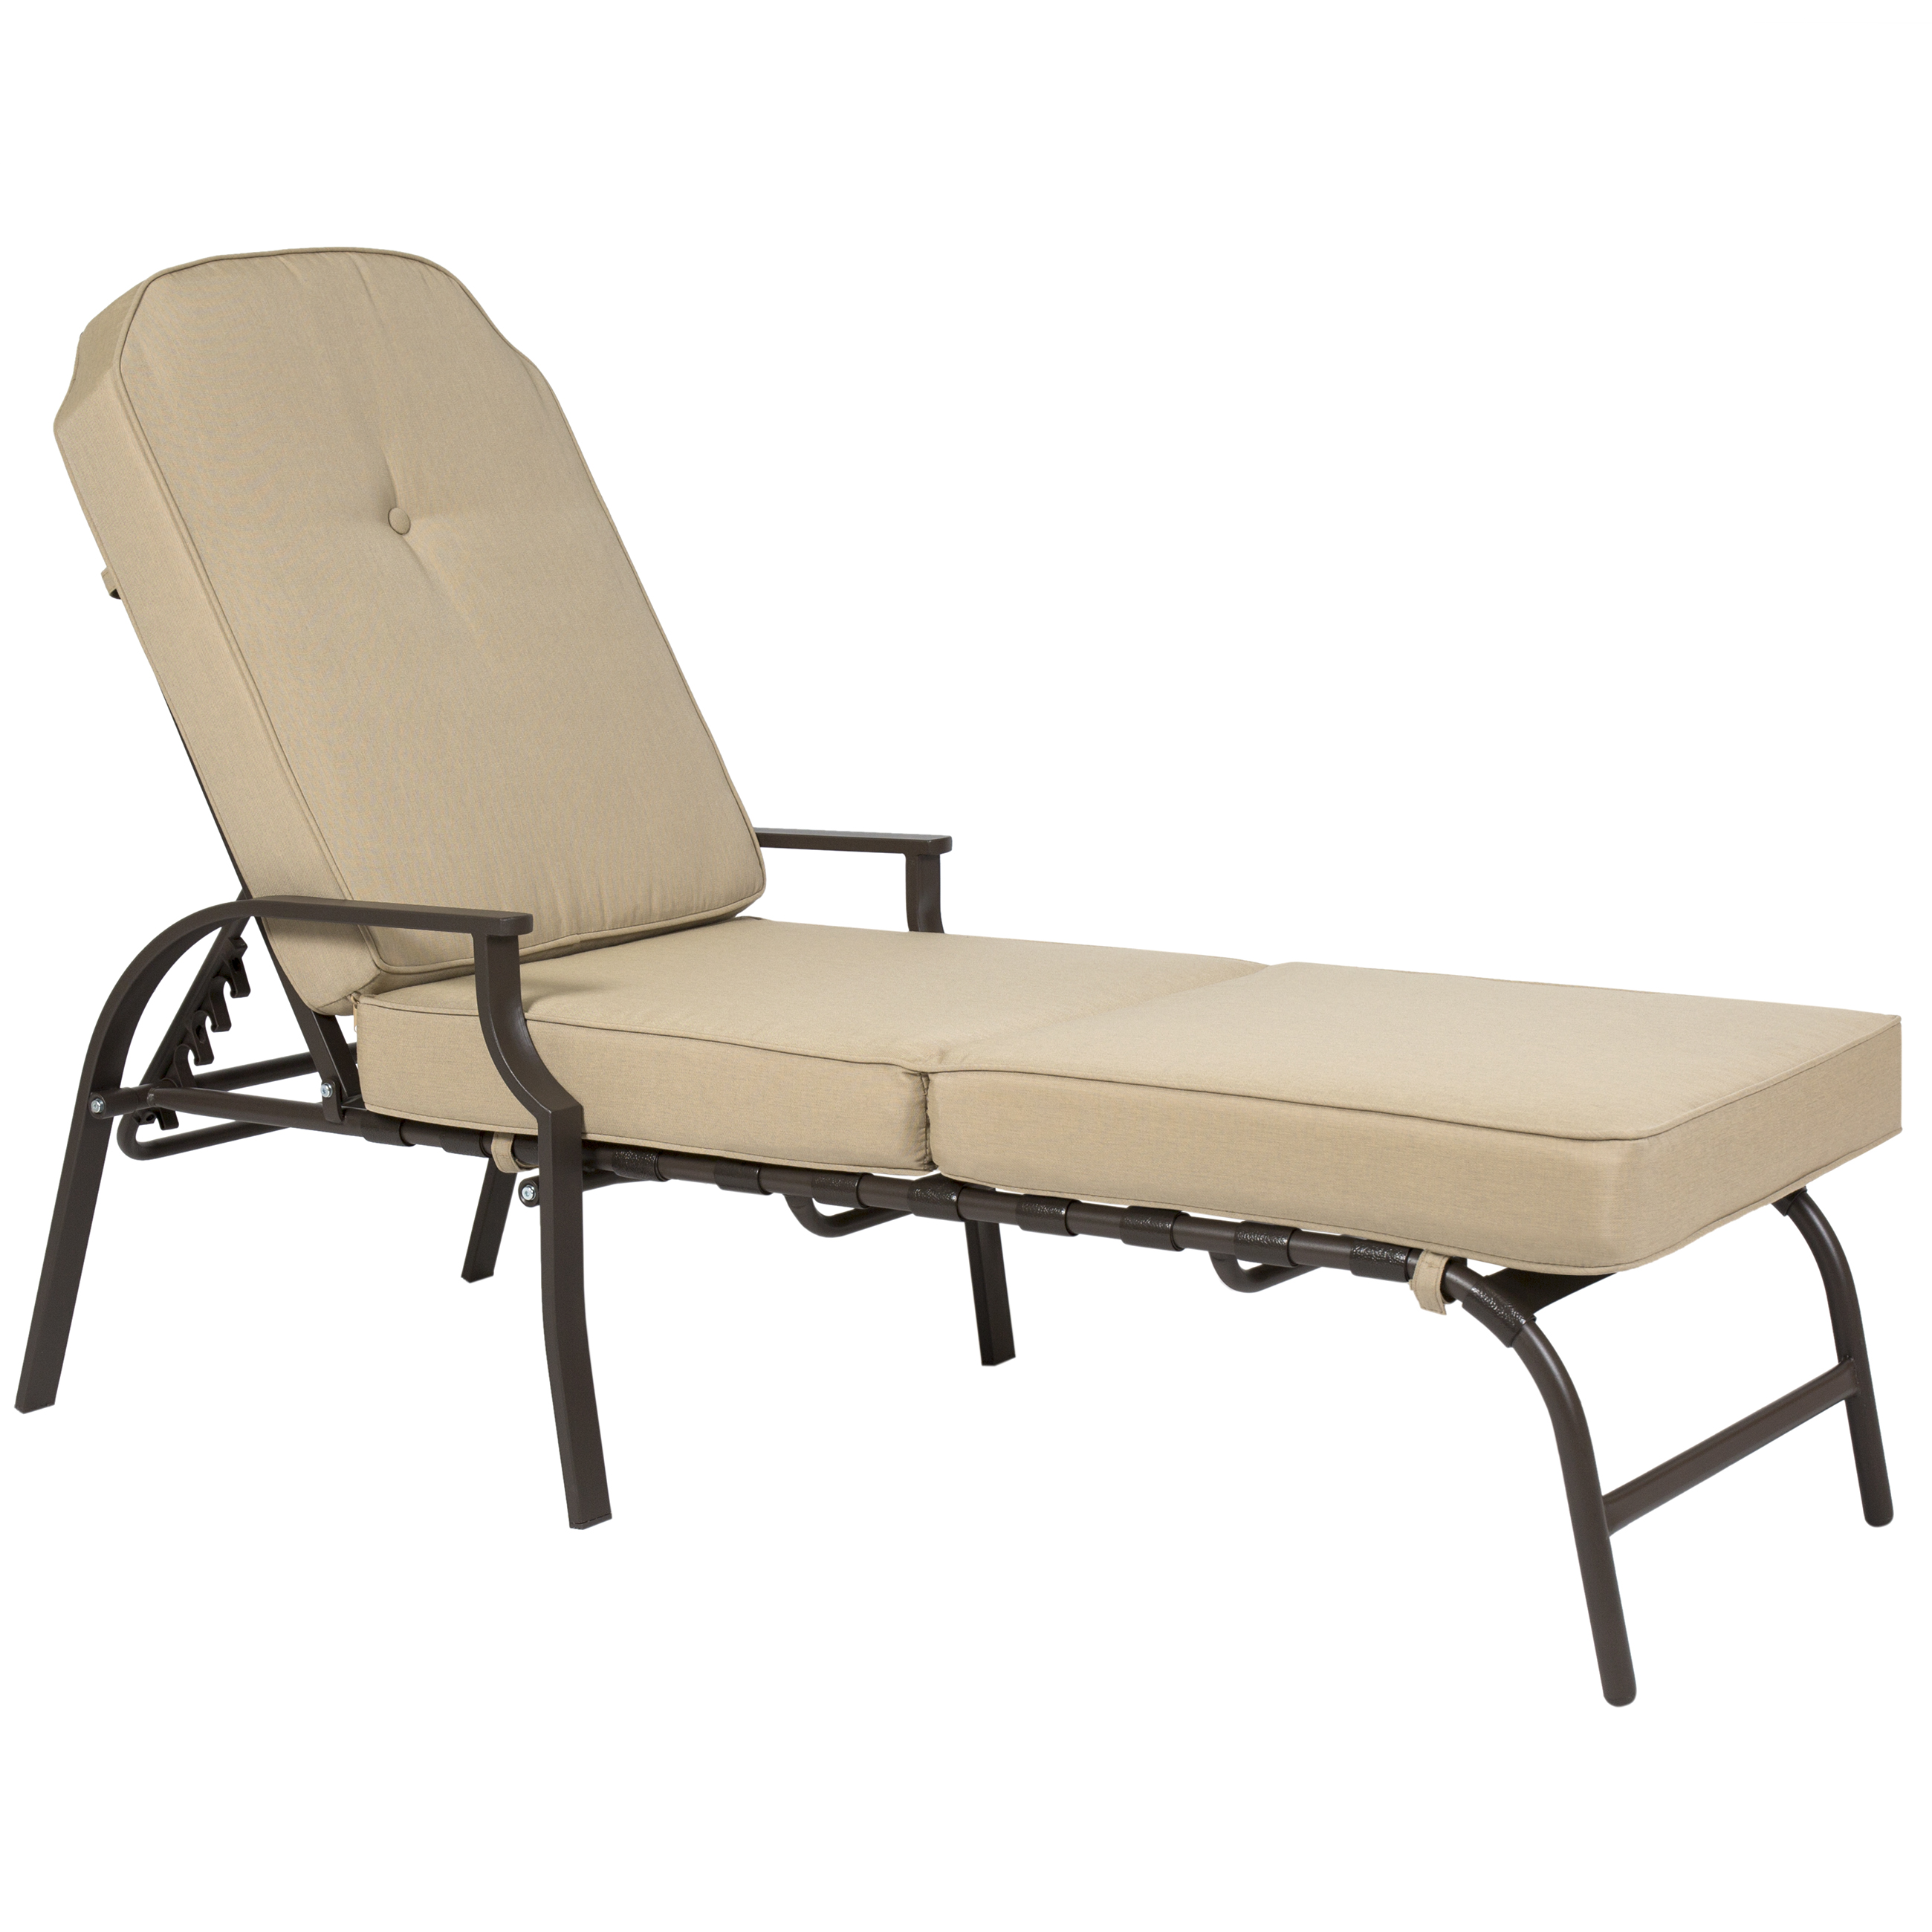 Best Choice Products Outdoor Chaise Lounge Chair W/ Cushion Pool Patio Furniture - Beige - Walmart.com  sc 1 st  Walmart : chaise patio - Sectionals, Sofas & Couches